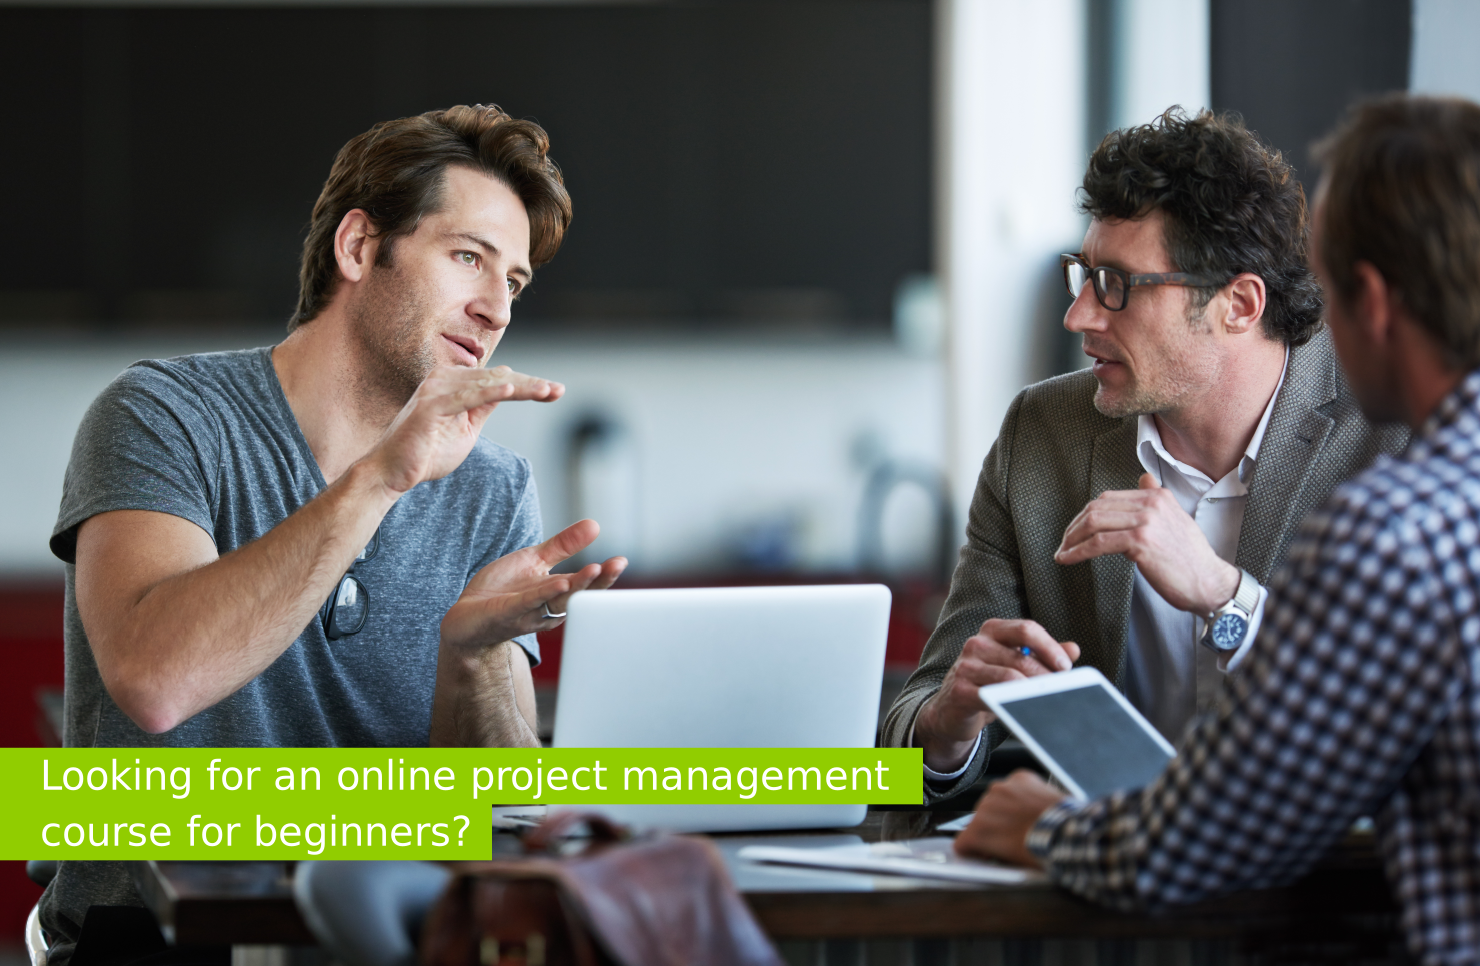 5 Online Project Management Courses For Beginners